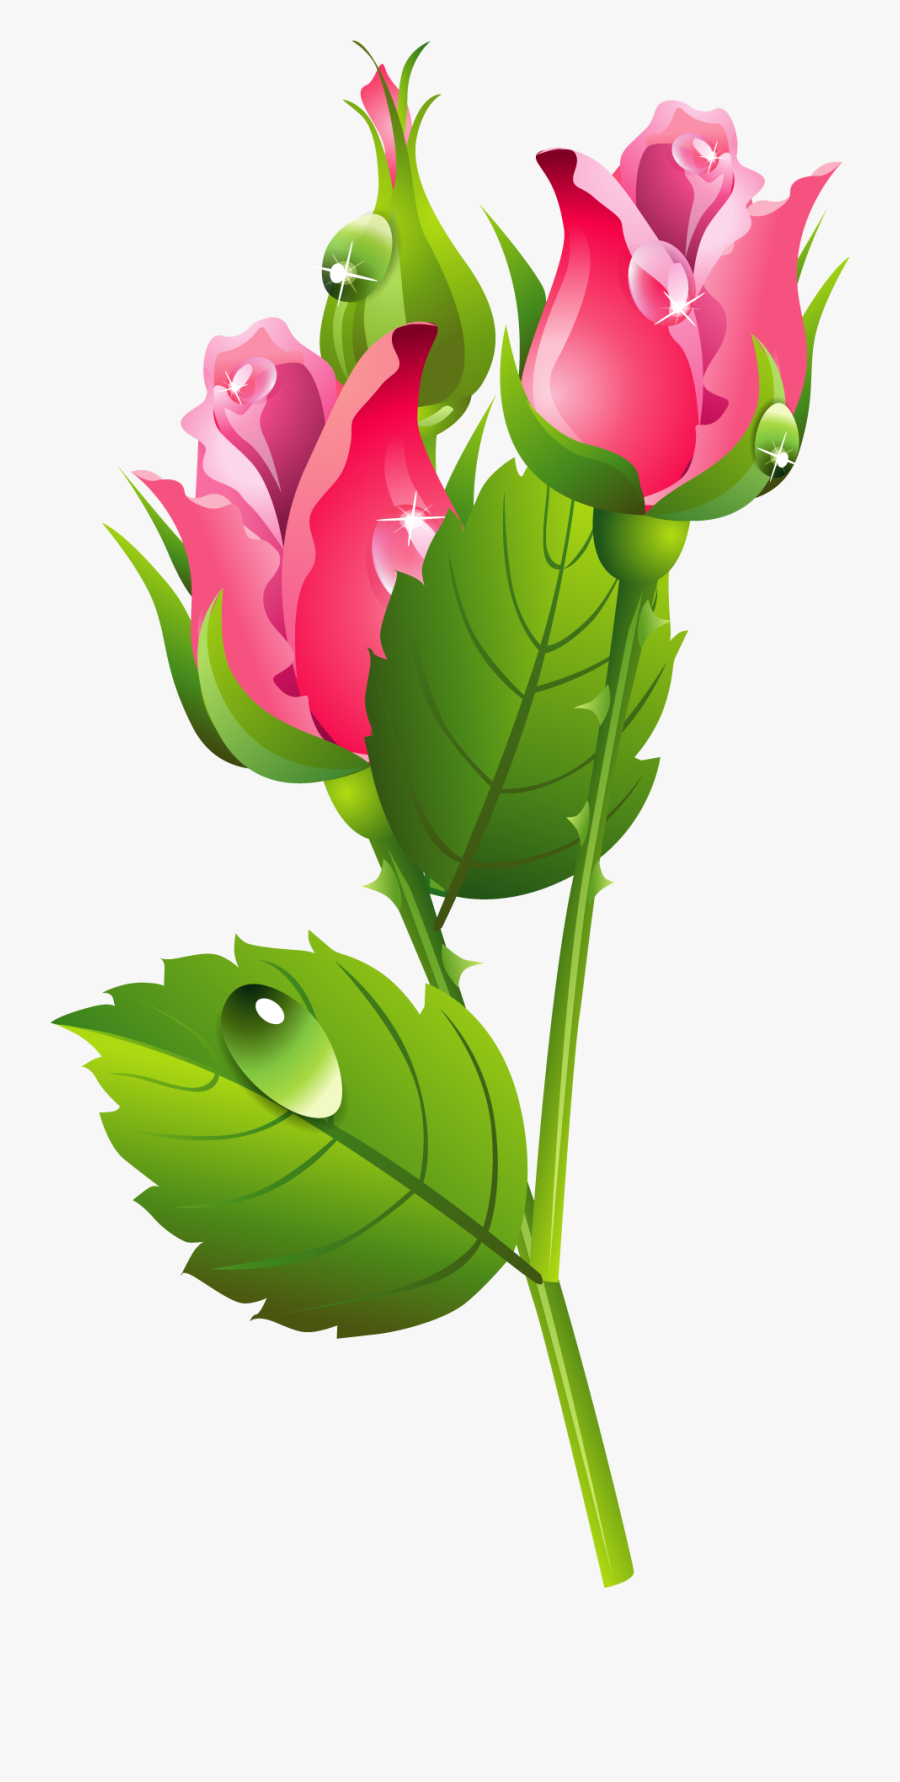 Pick Clipart May Flower Guldasta Sticker Free Transparent Clipart Clipartkey All our images are transparent and free for personal use. flower guldasta sticker